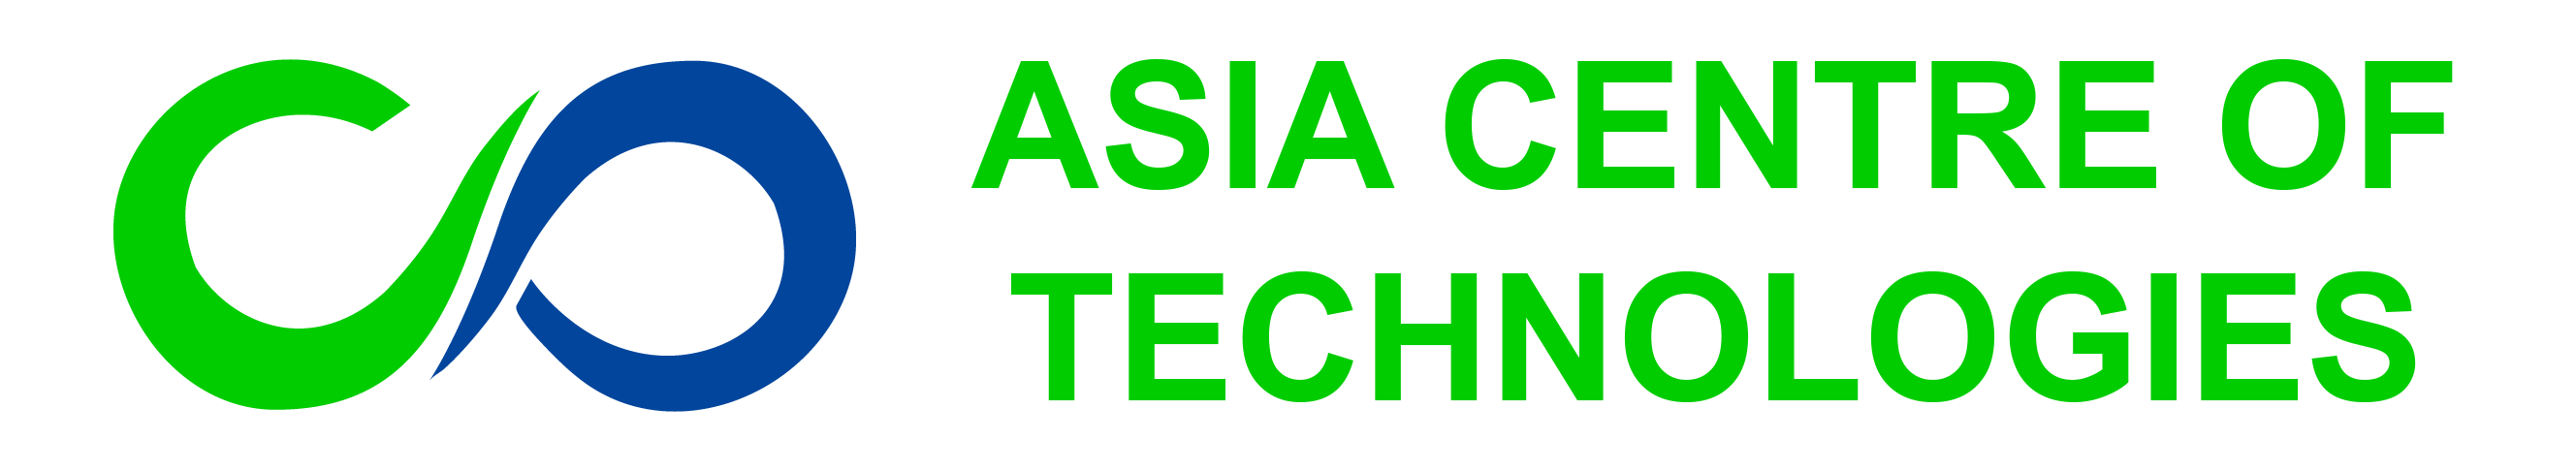 Asia Center of Technology